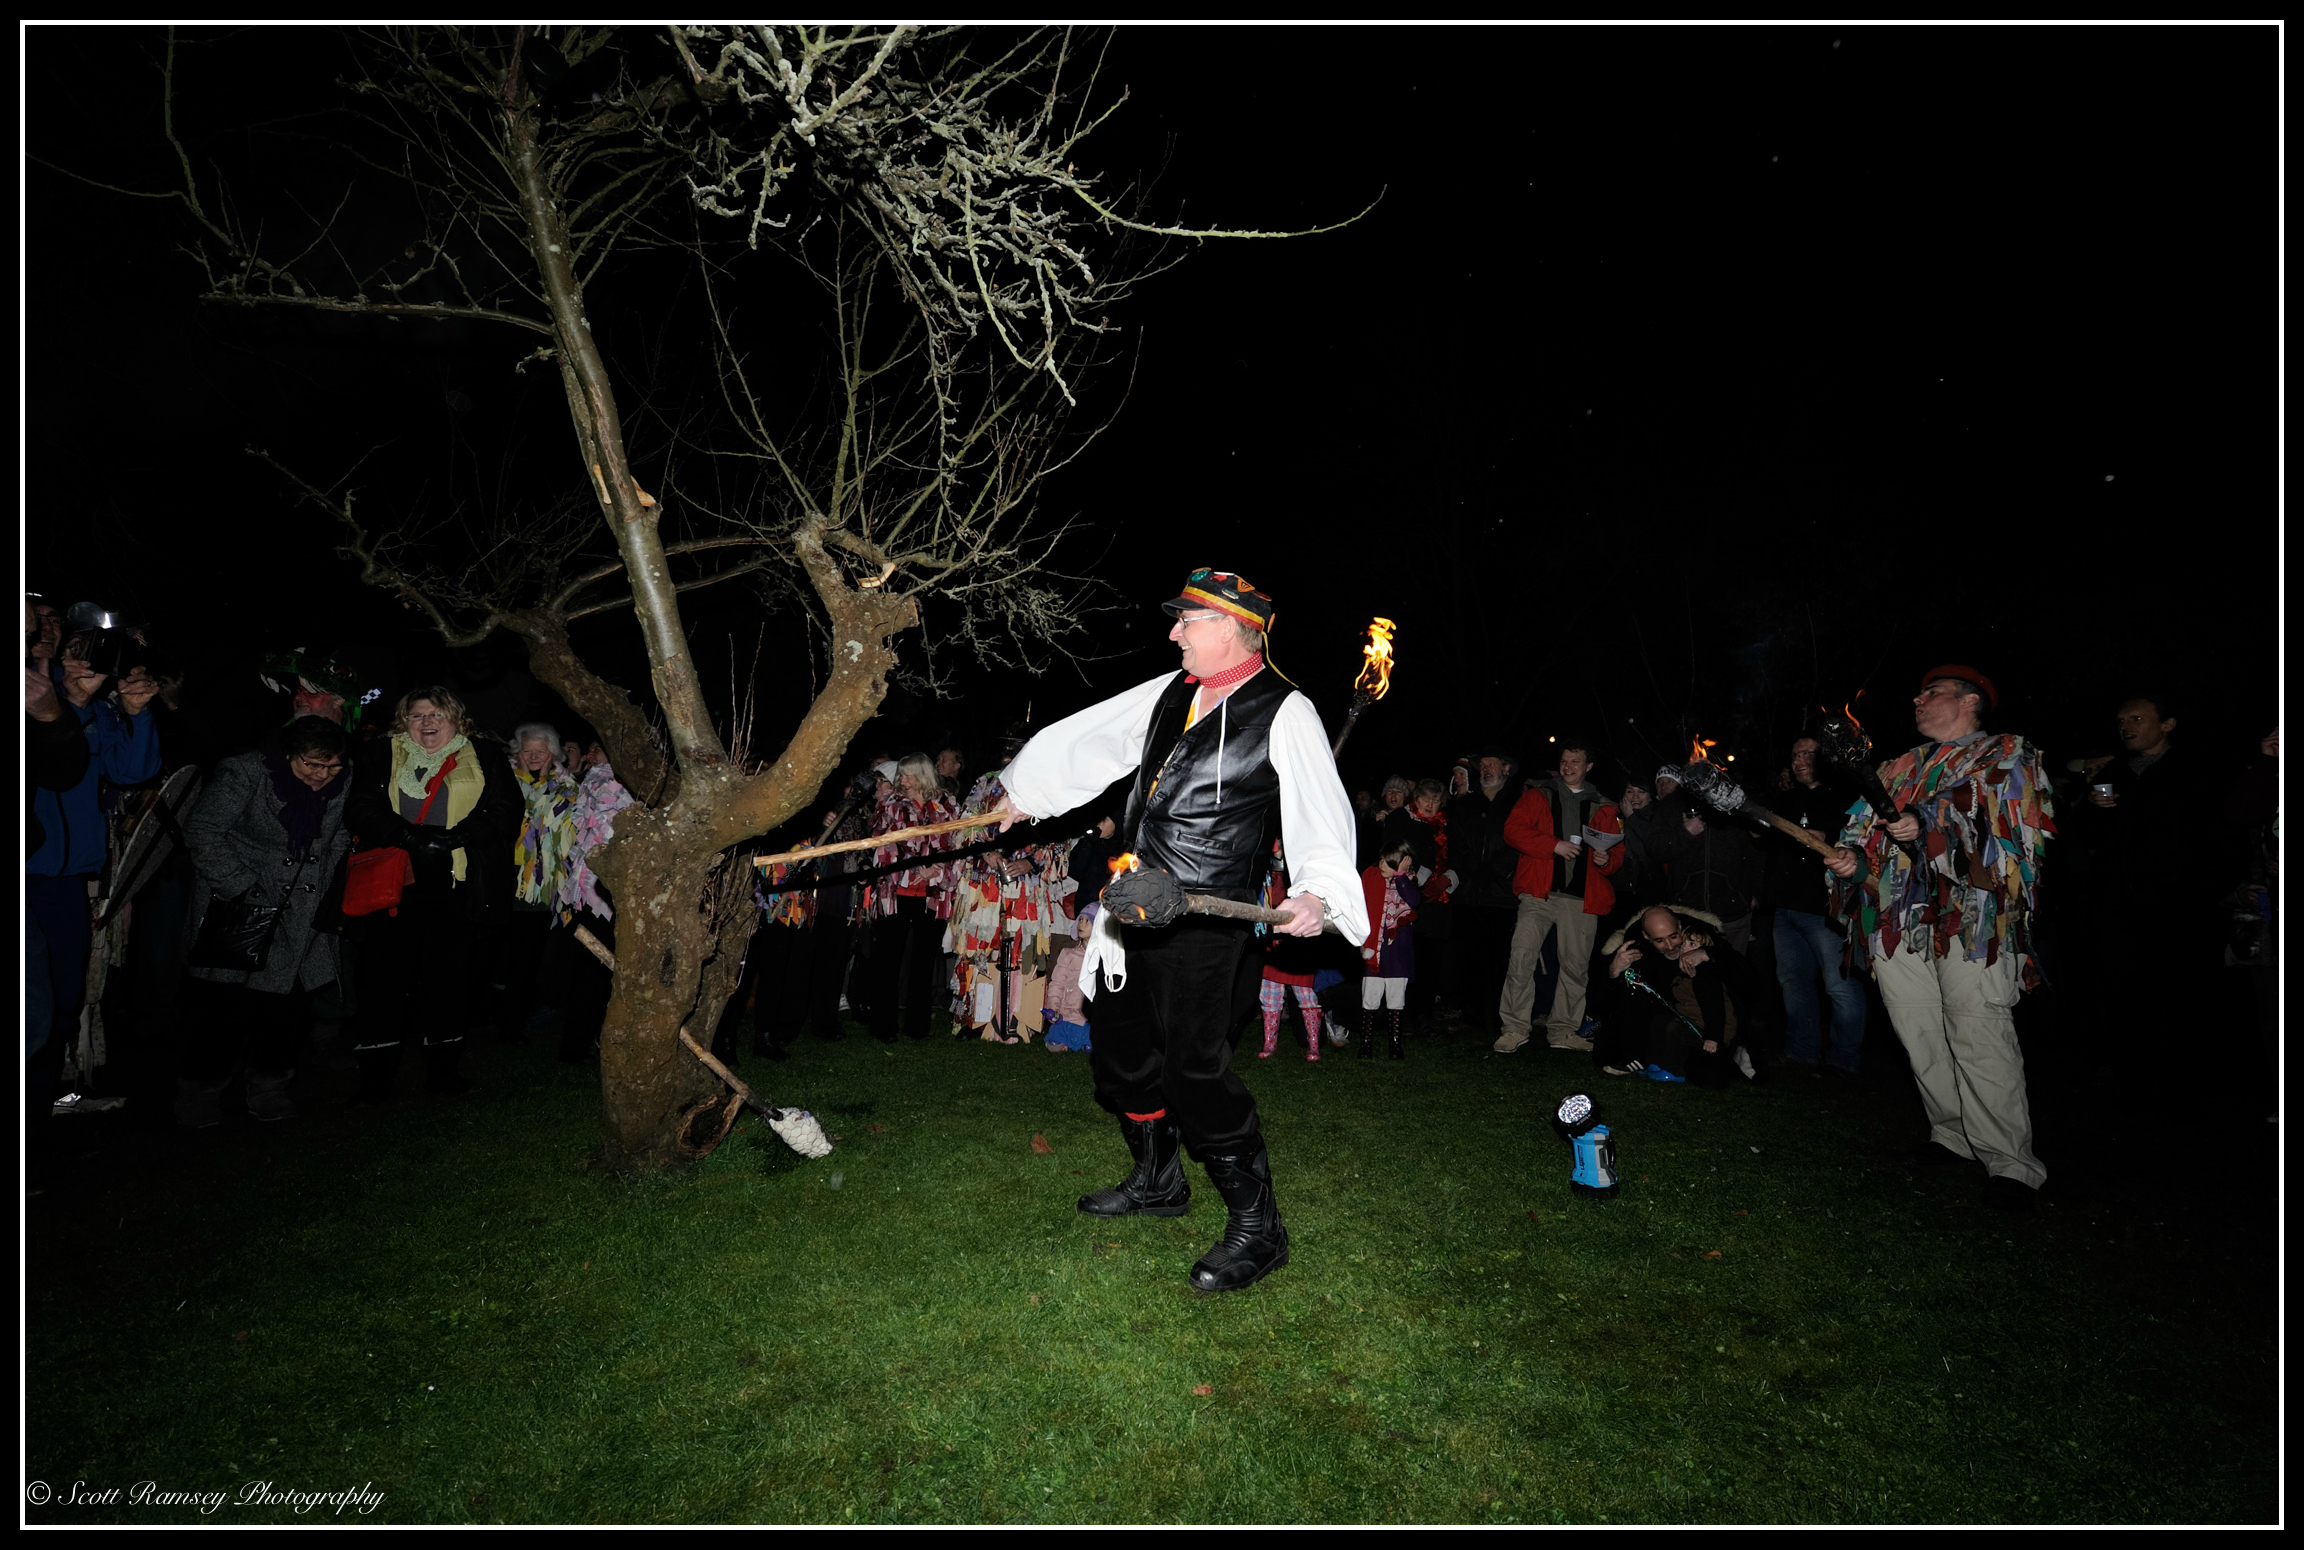 To awaken the tree spirits a large stick is hit against an apple tree during the Wassail at Tarring village in West Sussex.